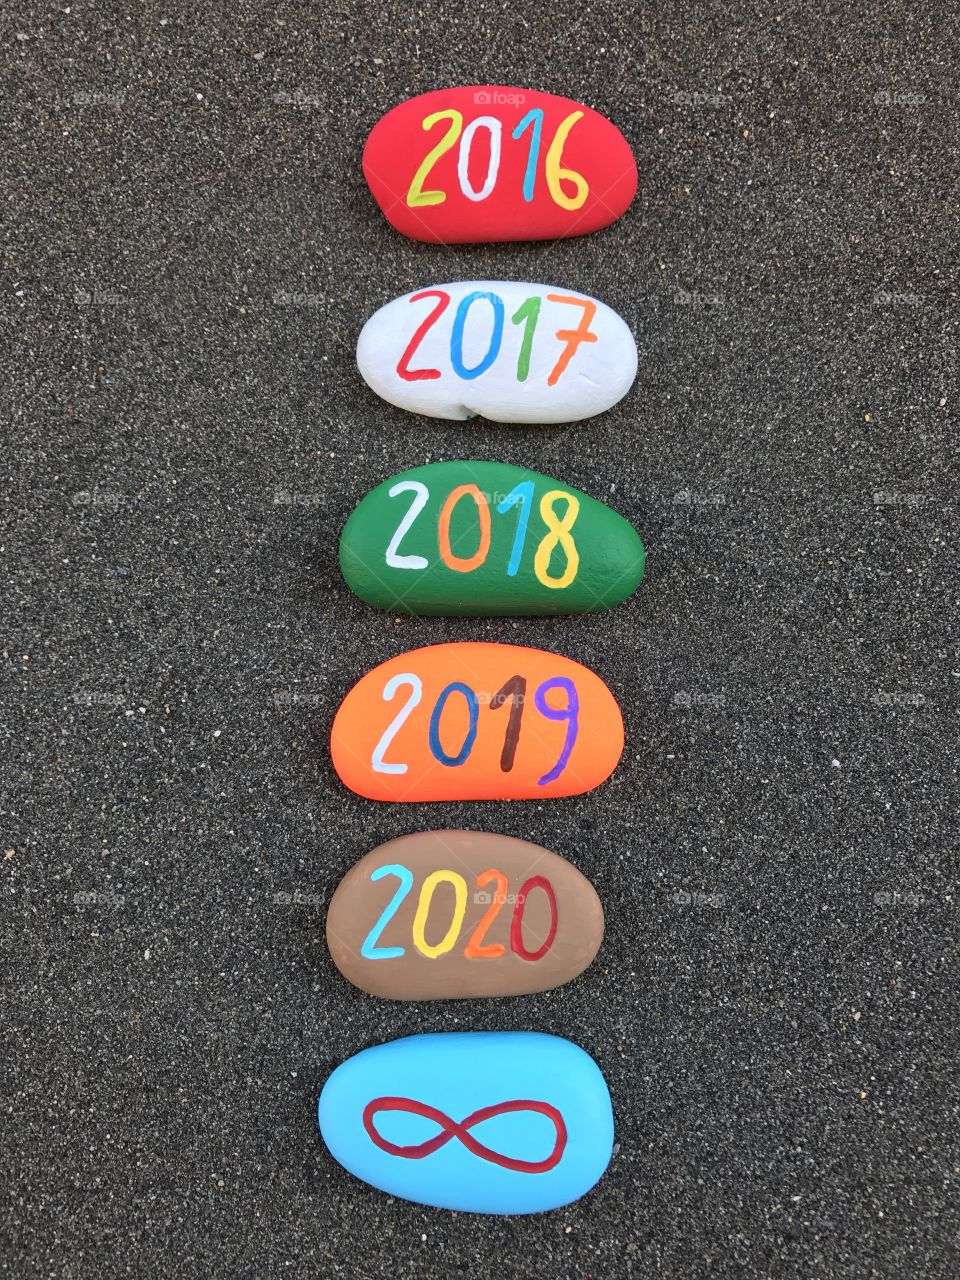 2016,2017,2018,2019,2020 year oncolored stones